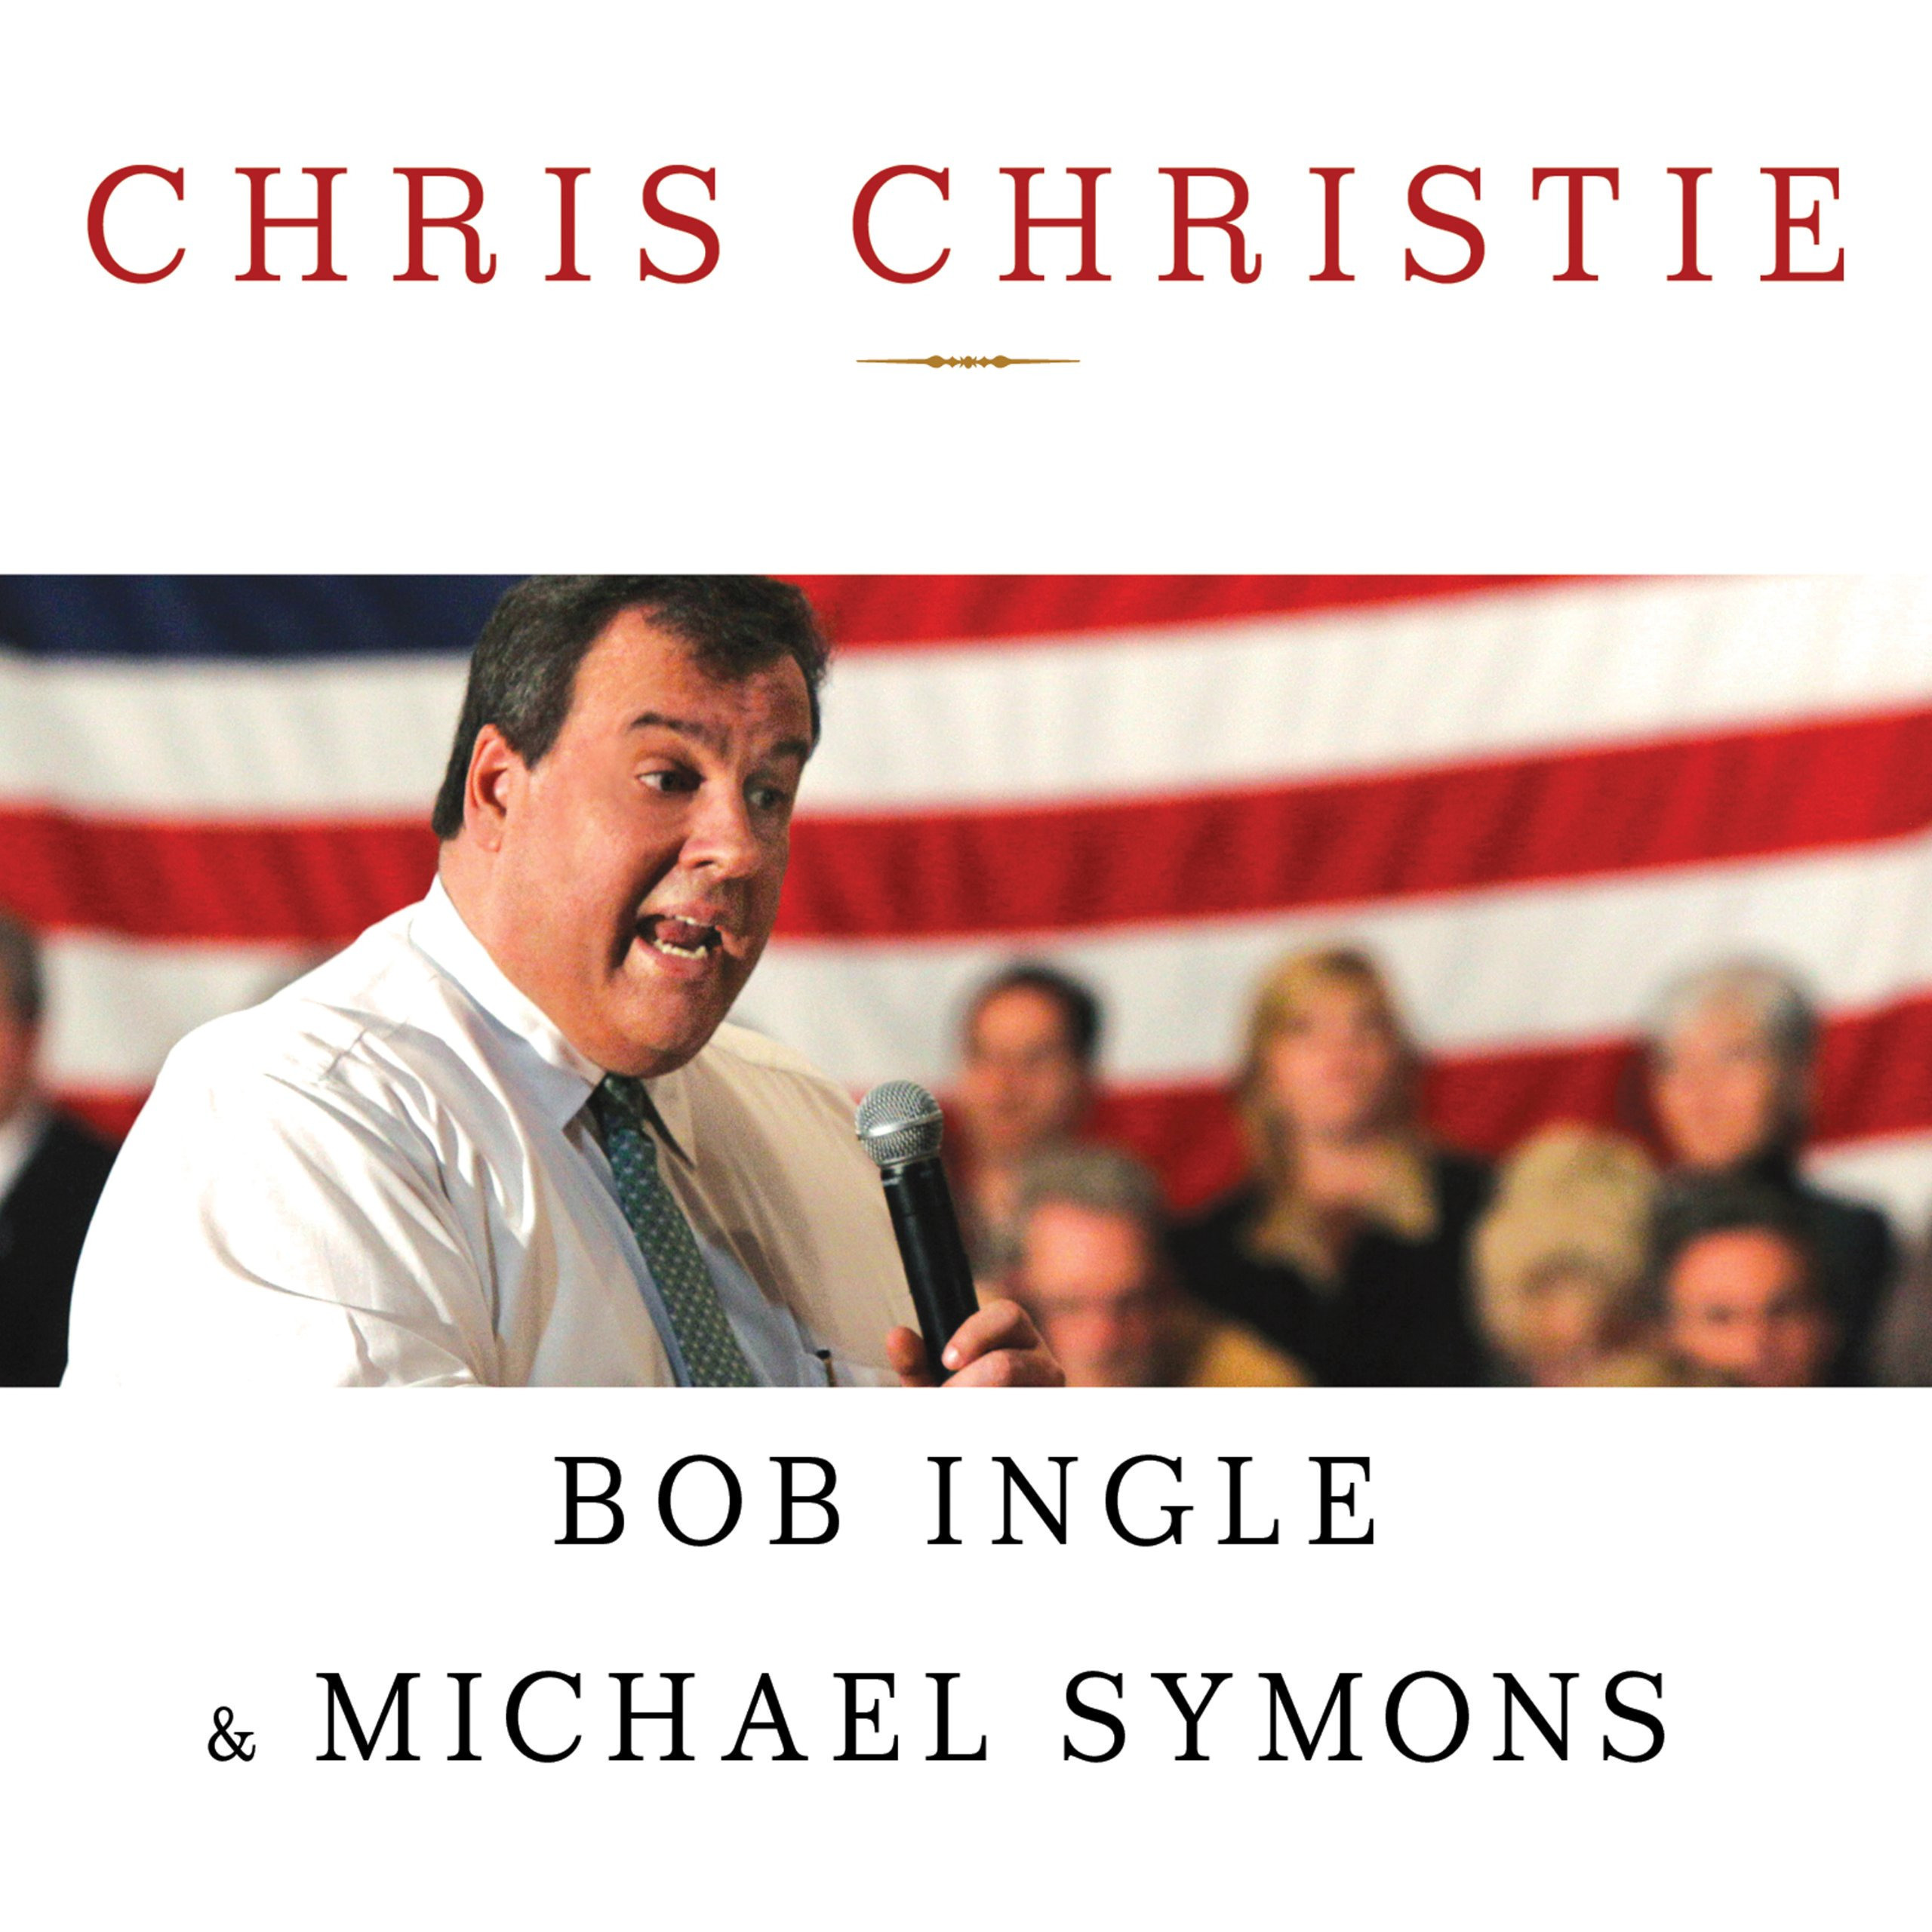 Printable Chris Christie: The Inside Story of His Rise to Power Audiobook Cover Art